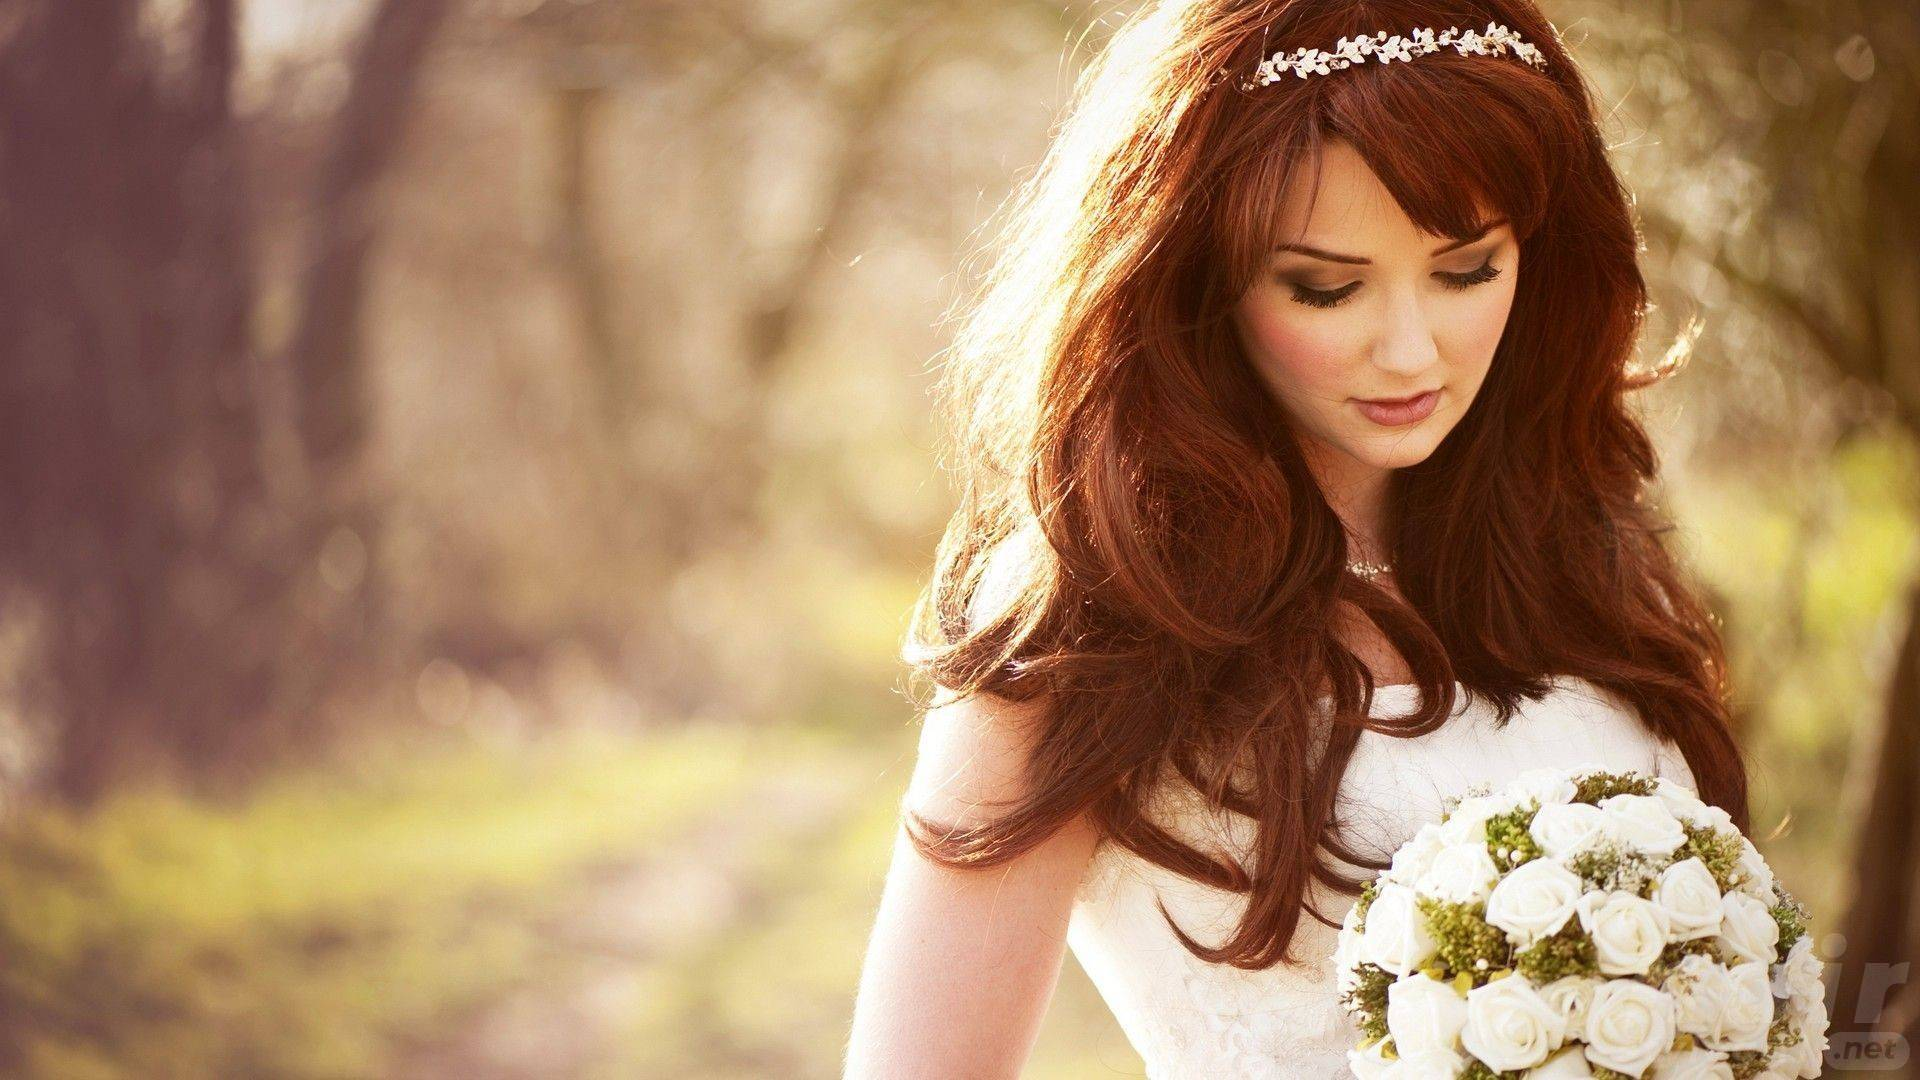 Most Stylish Wedding Hairstyles For Long Hair | Hair Style